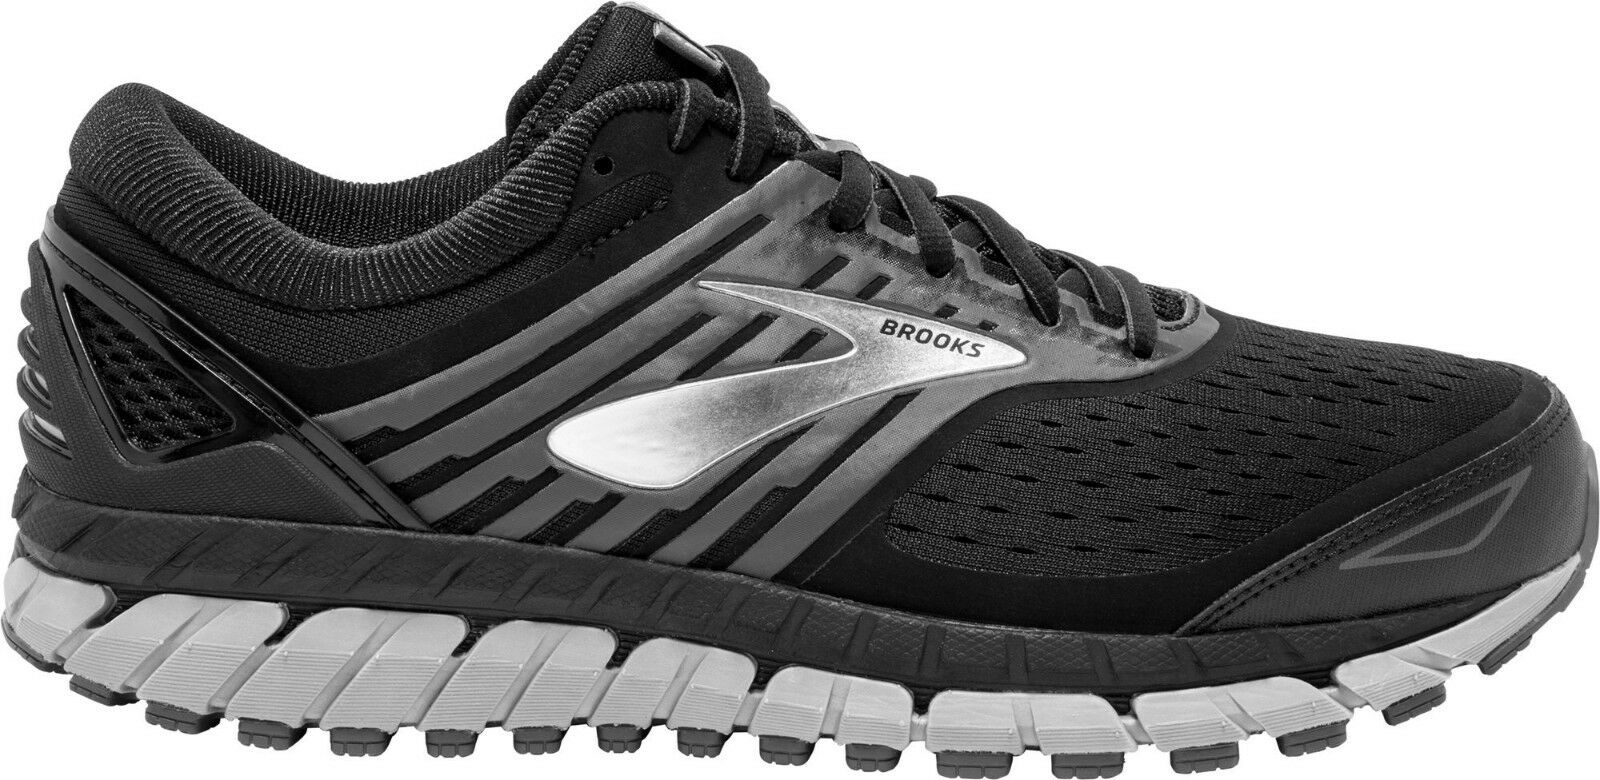 **LATEST RELEASE** Brooks Beast 18 Mens Running Shoes (4E) (004)